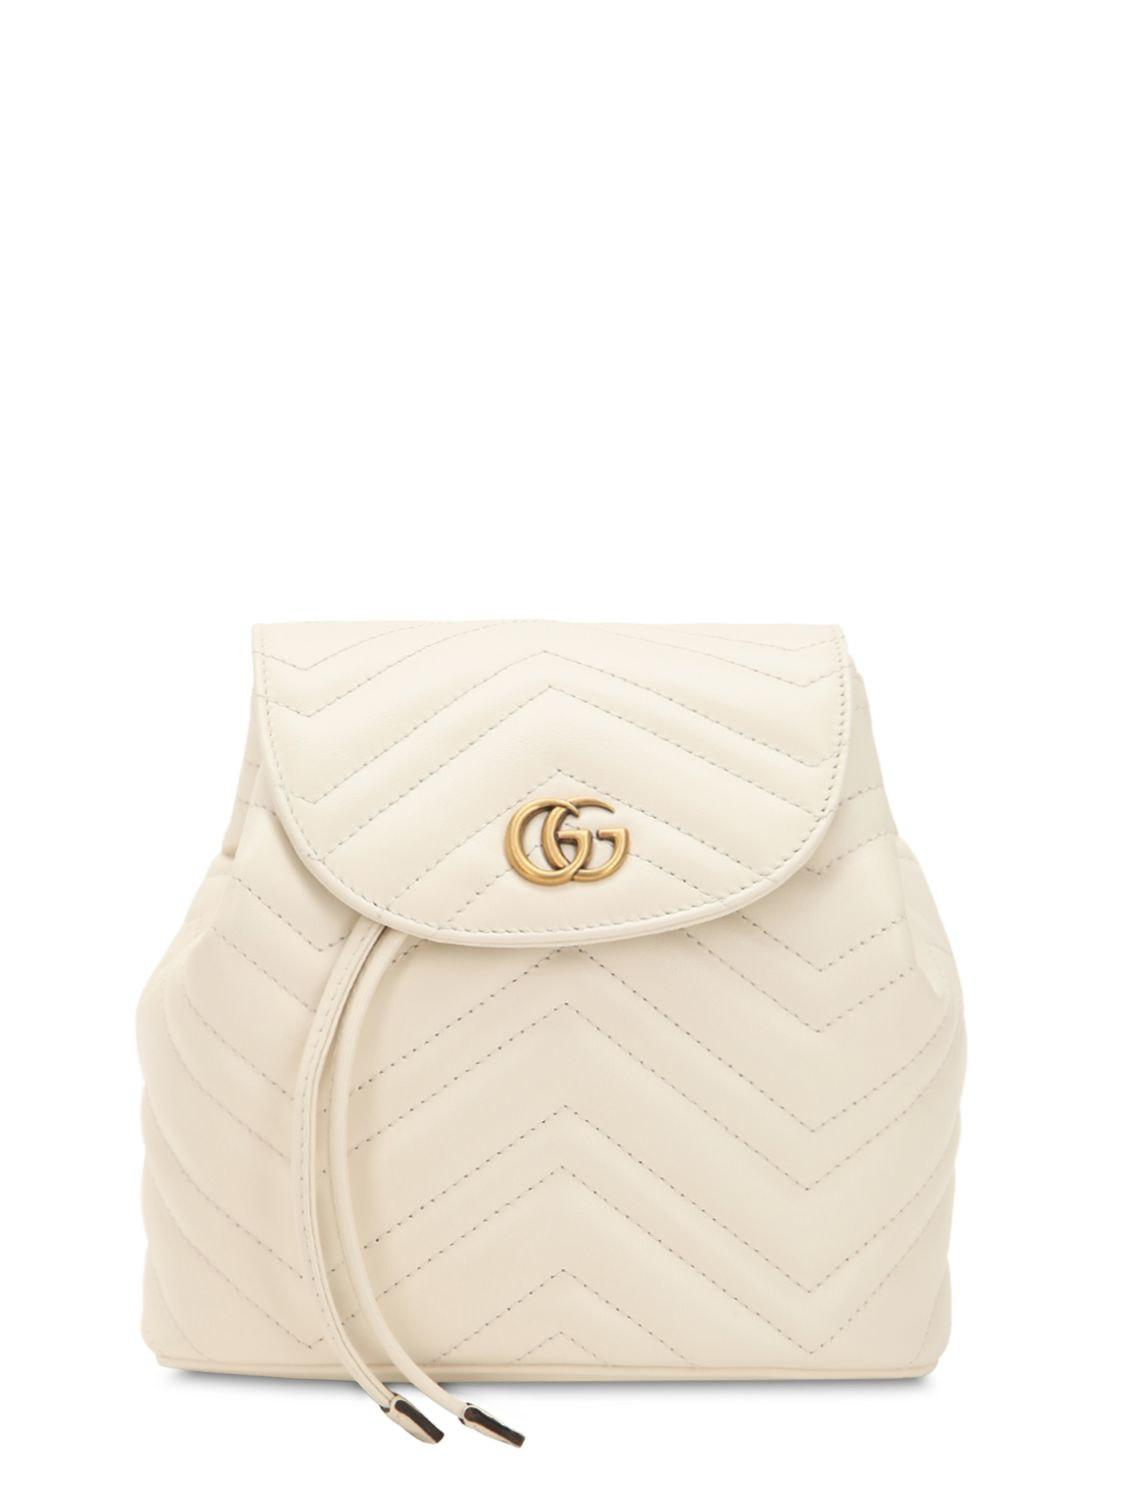 942526c5ae0b Gucci Mini Gg Marmont Leather Backpack in White - Lyst